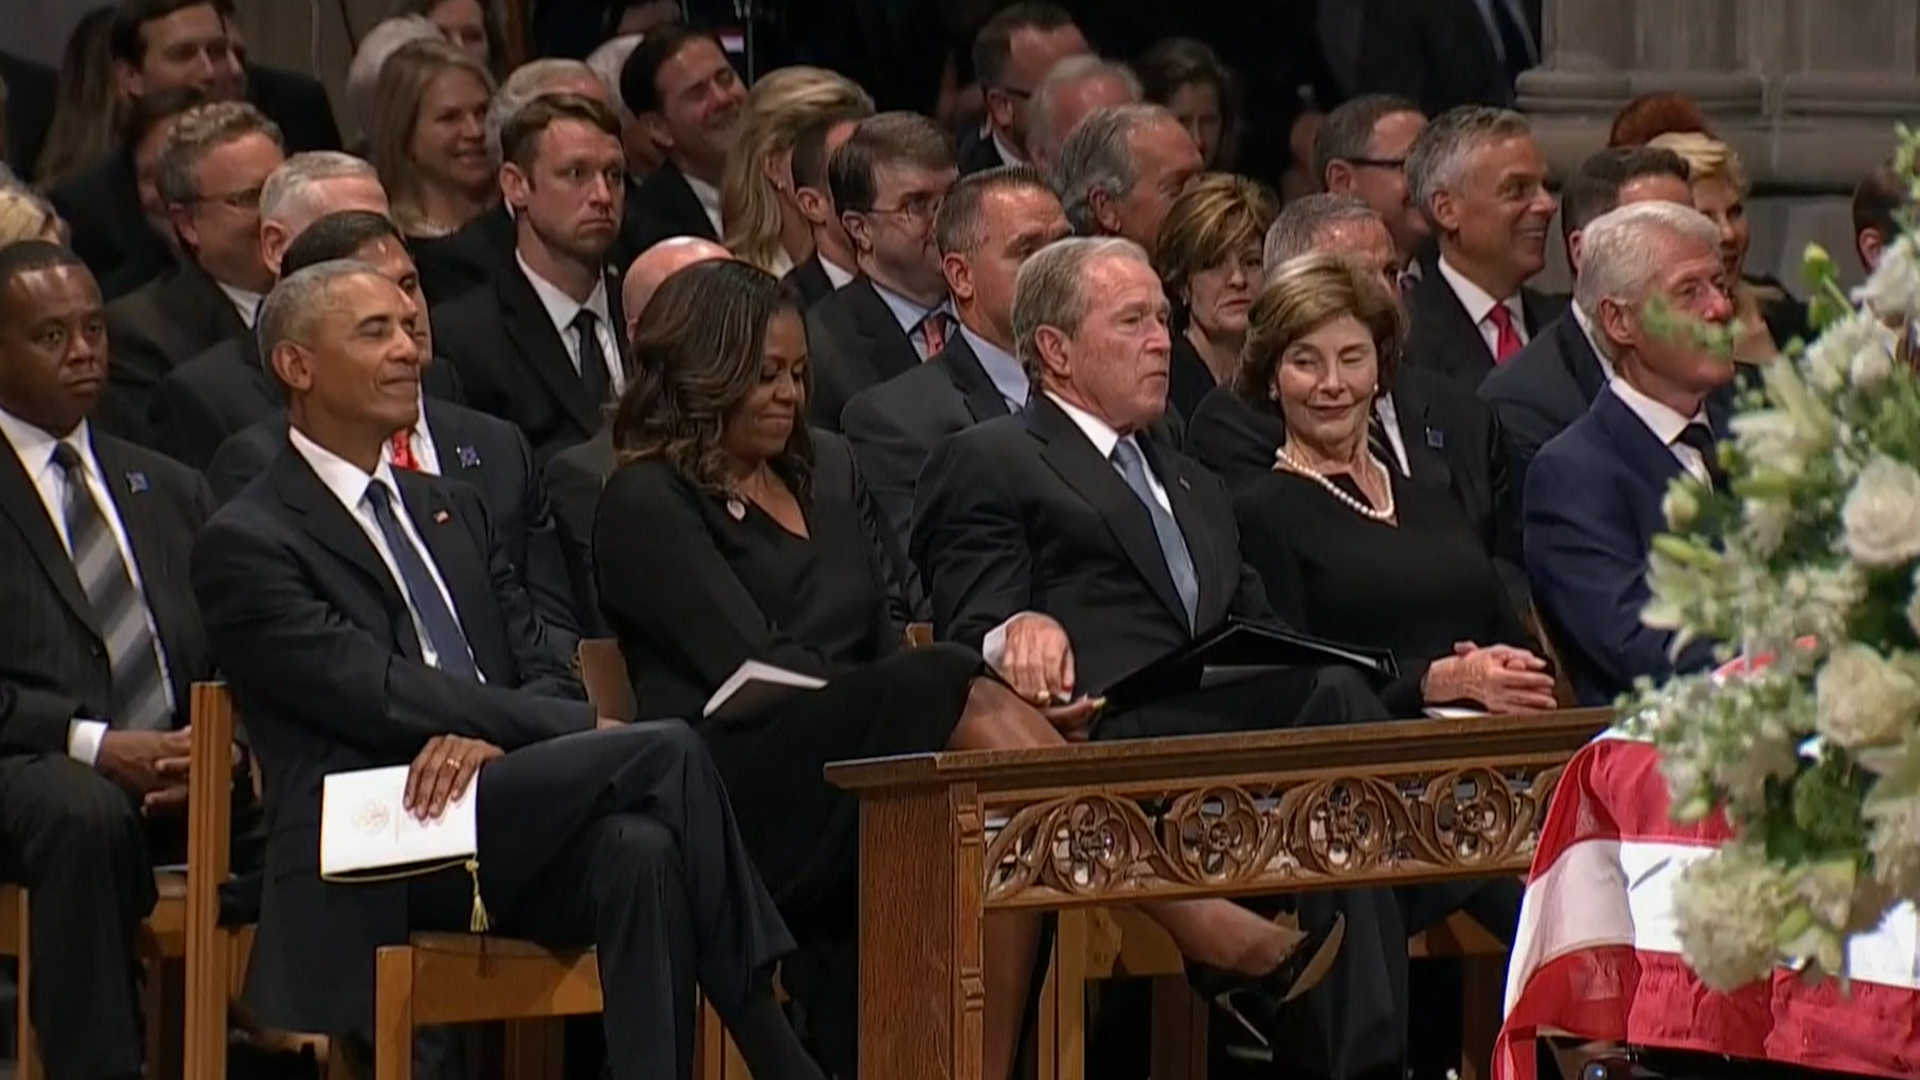 George Bush Slips Candy to Michelle Obama